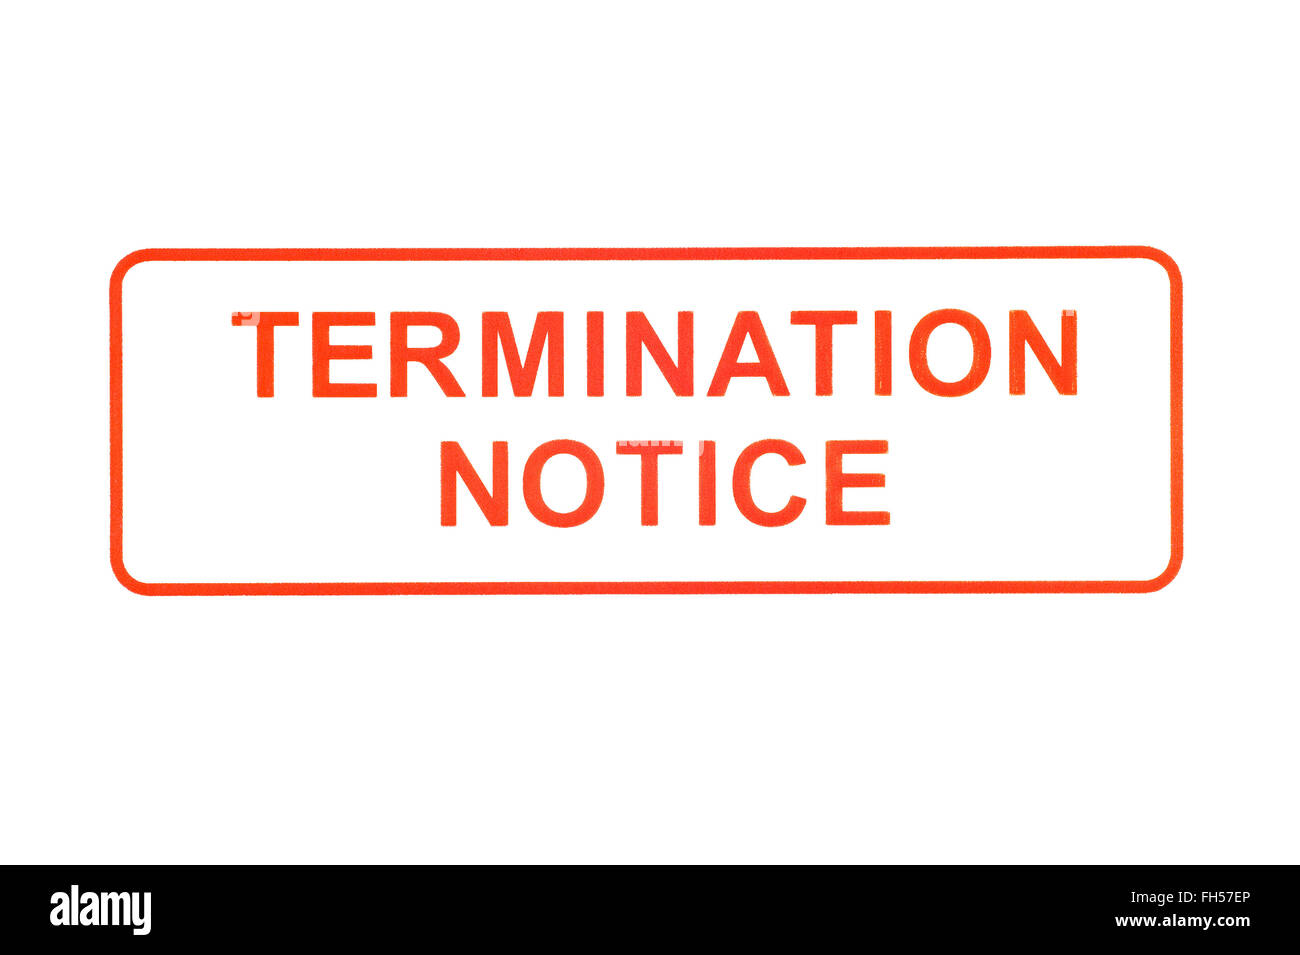 Termination Notice Rubber Stamp - Stock Image